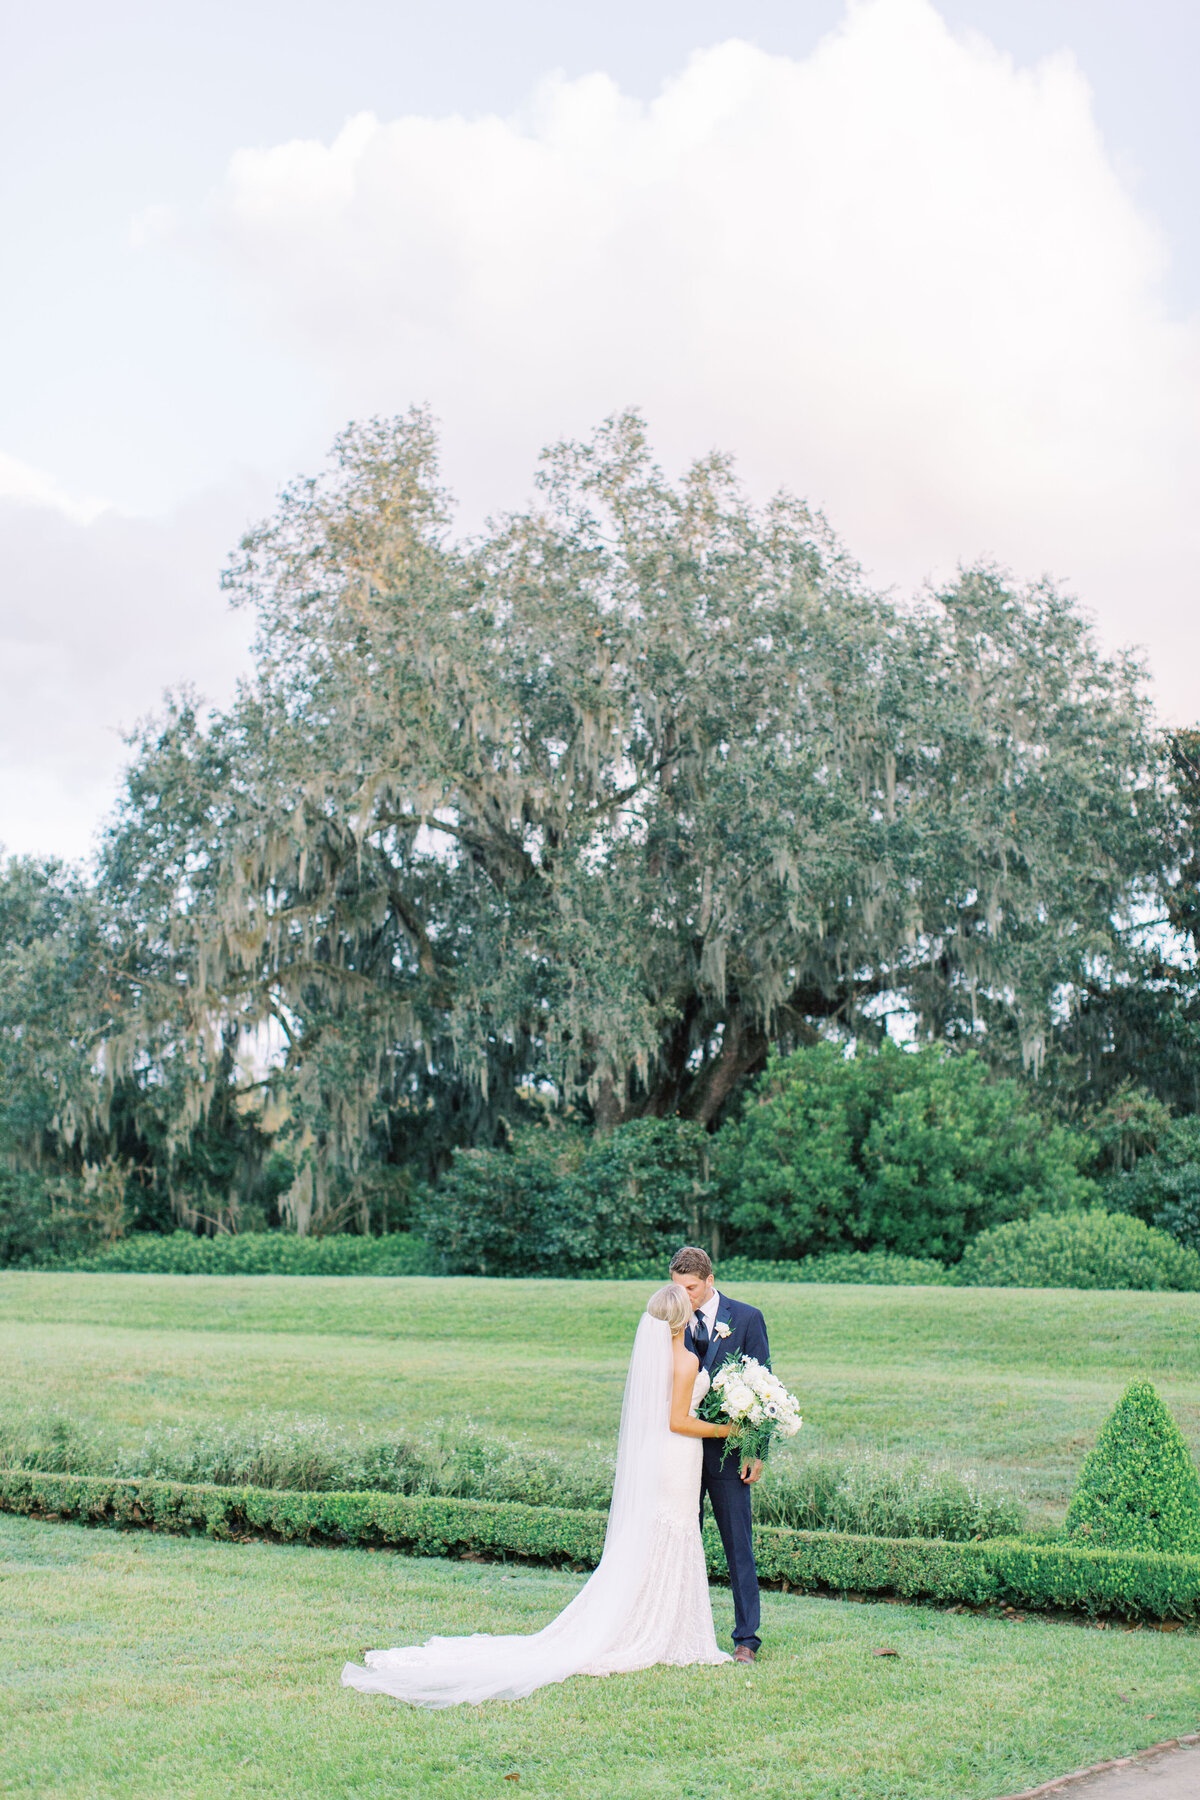 Melton_Wedding__Middleton_Place_Plantation_Charleston_South_Carolina_Jacksonville_Florida_Devon_Donnahoo_Photography__0771